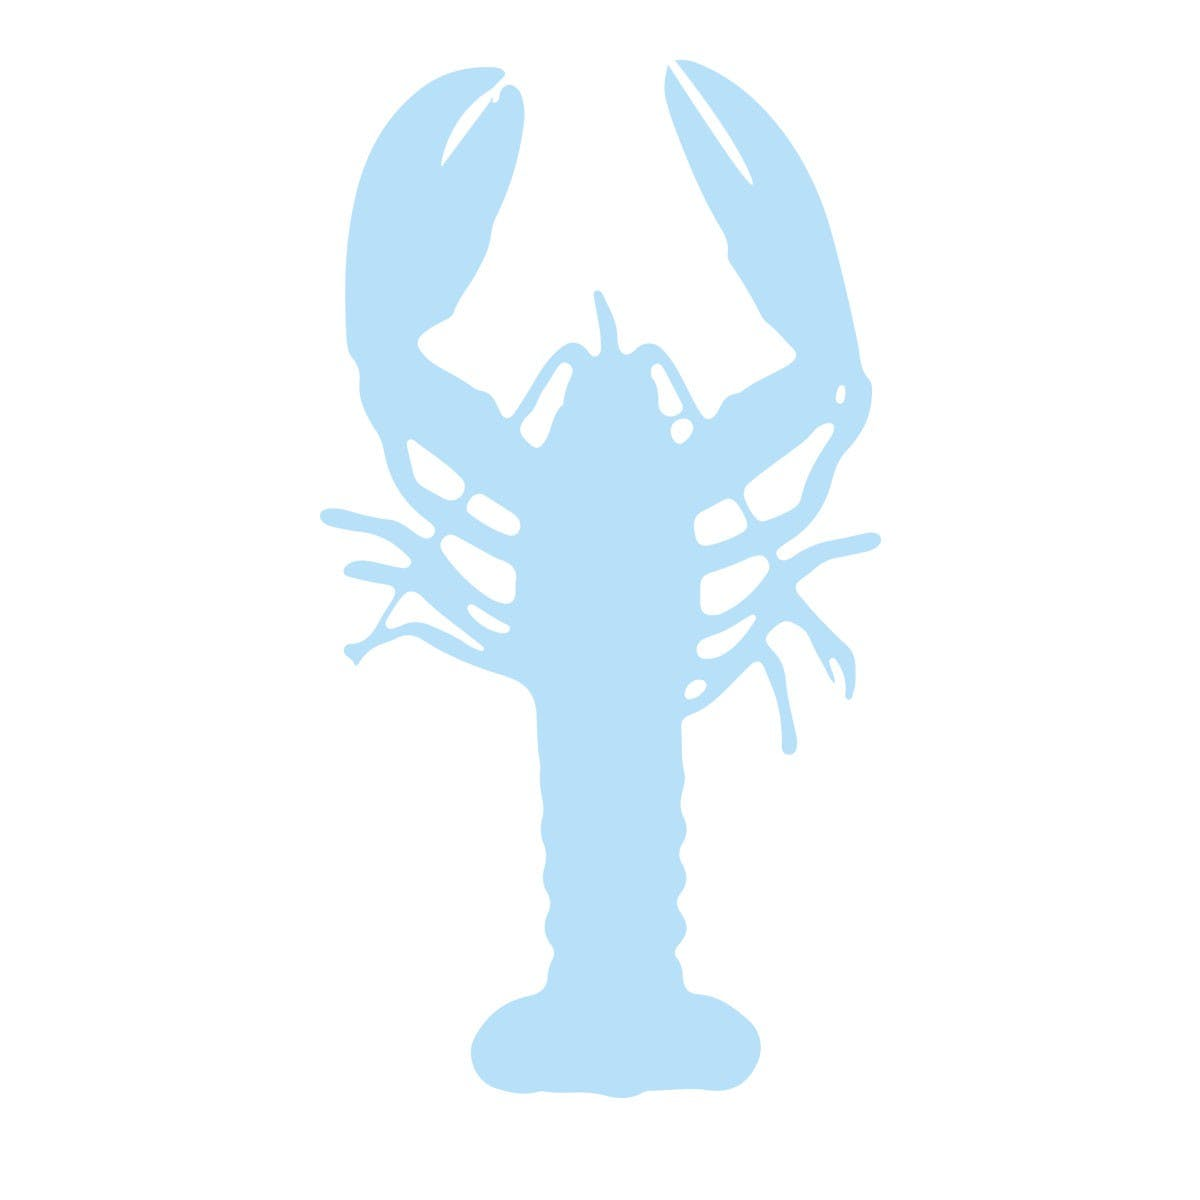 Lobster Image - 3